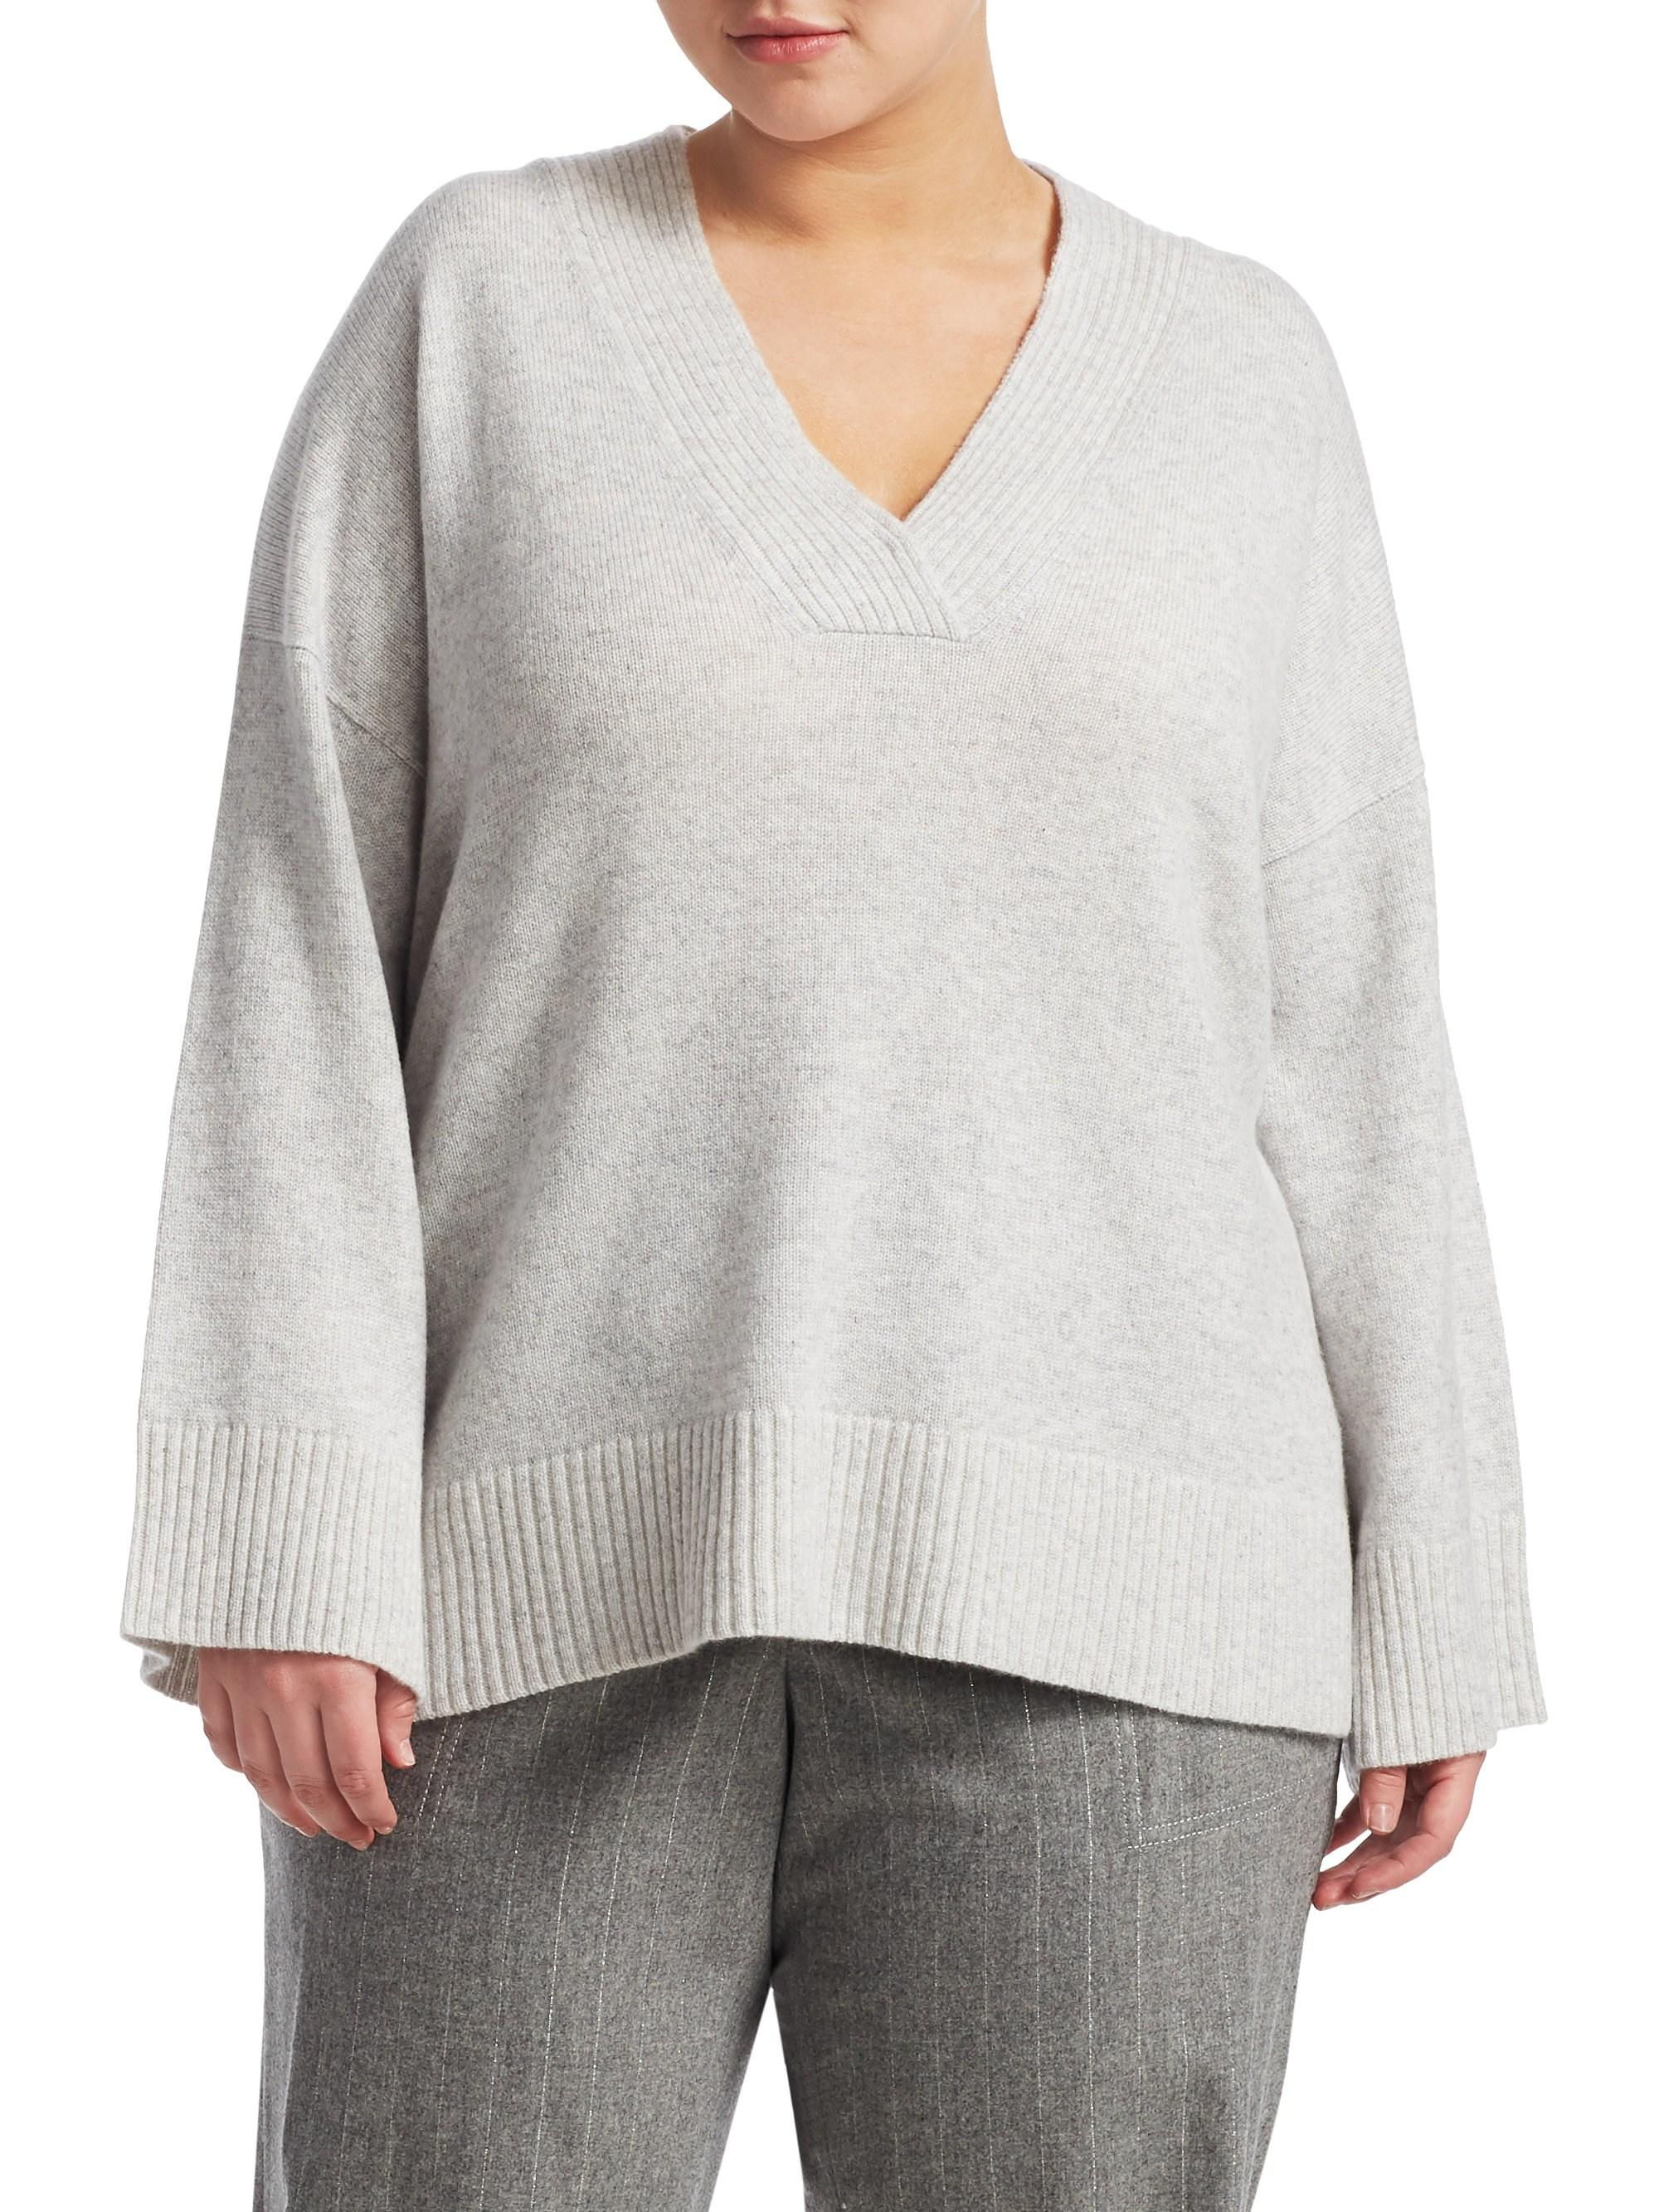 In Gray Sweater 148 Vanise Neck V York New Cashmere Lafayette Lyst XuZTPilOwk